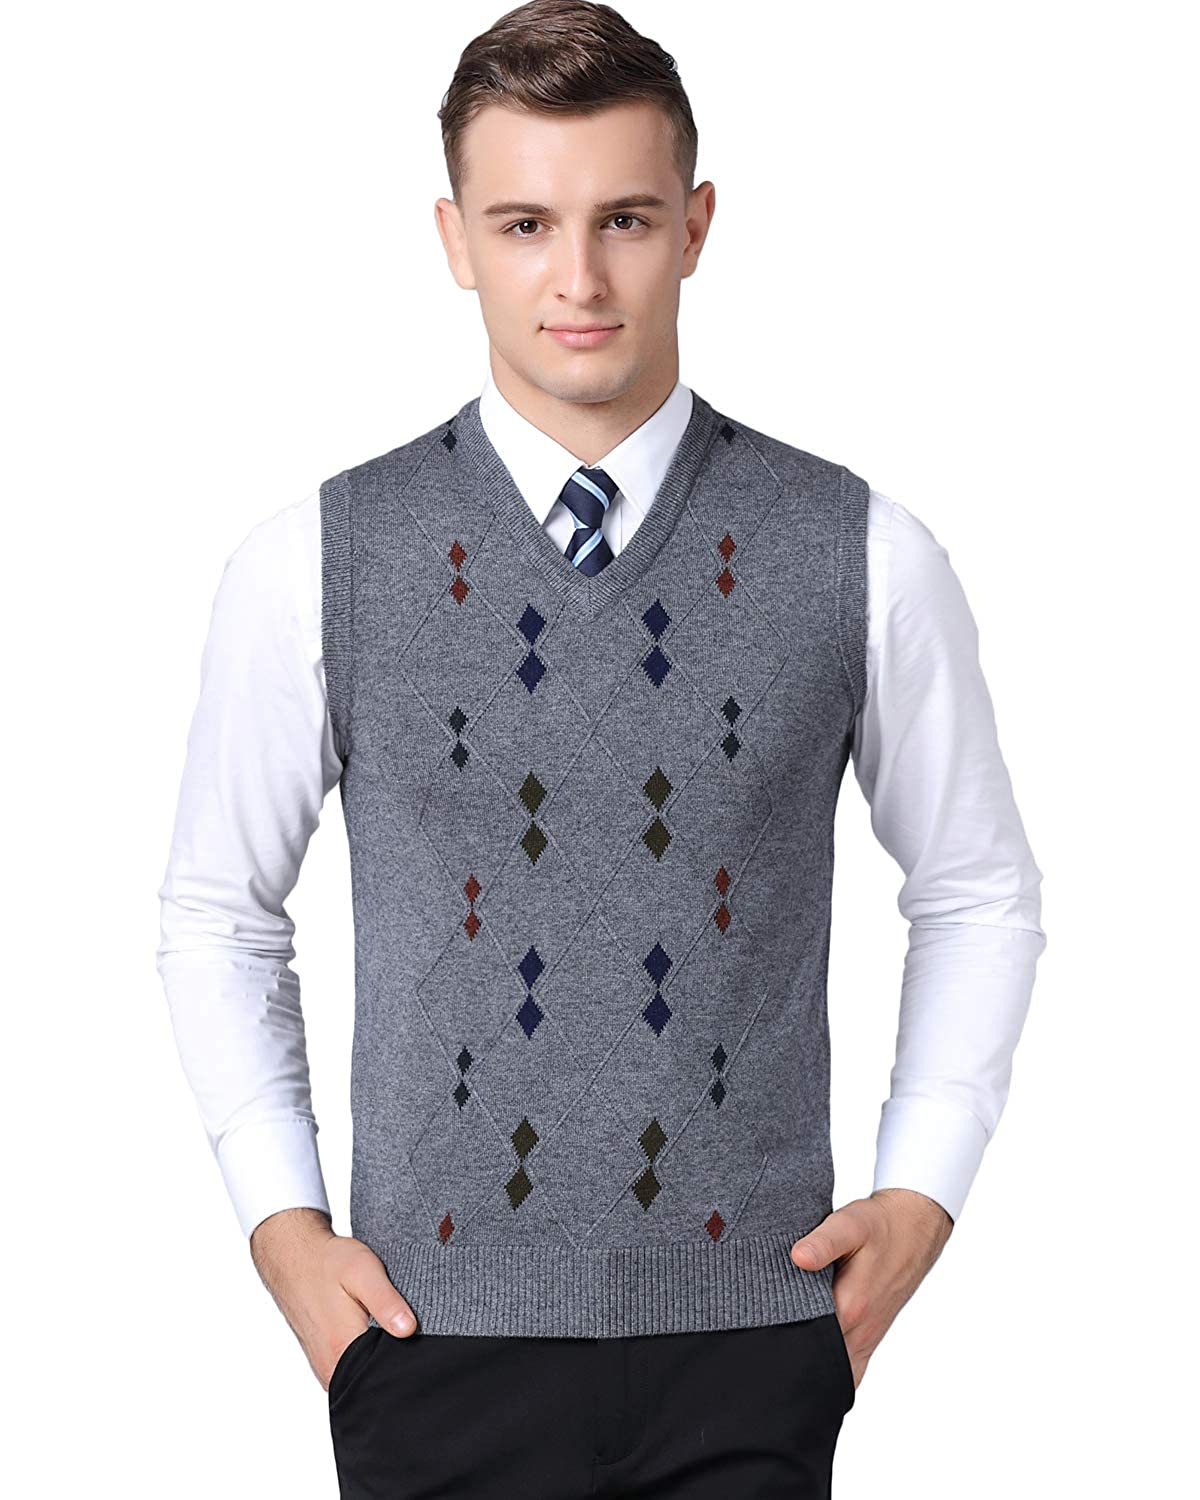 1950s Men's Clothing Homovater Classic Mens Gilet V-Neck Sleeveless Jumper Vest Knitwear Cardigans Knitted Waistcoat Sweater Tank Tops £17.99 AT vintagedancer.com